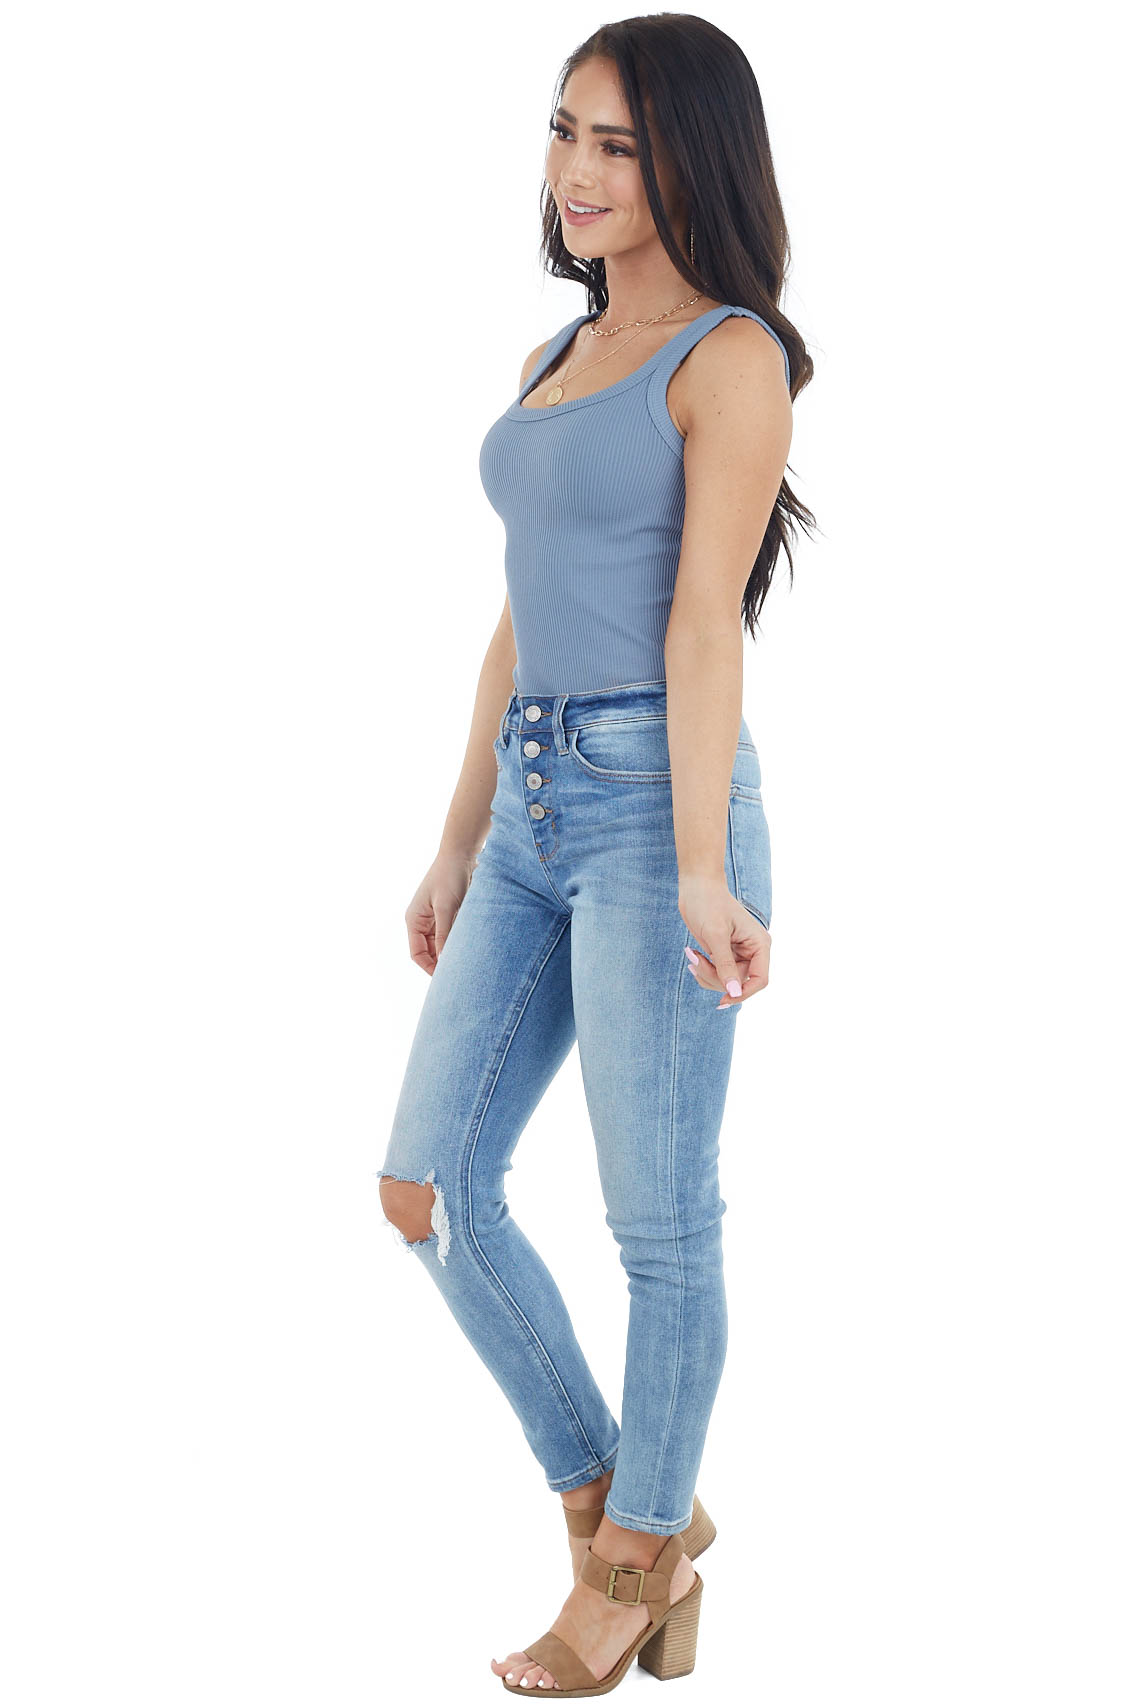 Dusty Blue Ribbed Knit Sleeveless Scoop Neckline Bodysuit